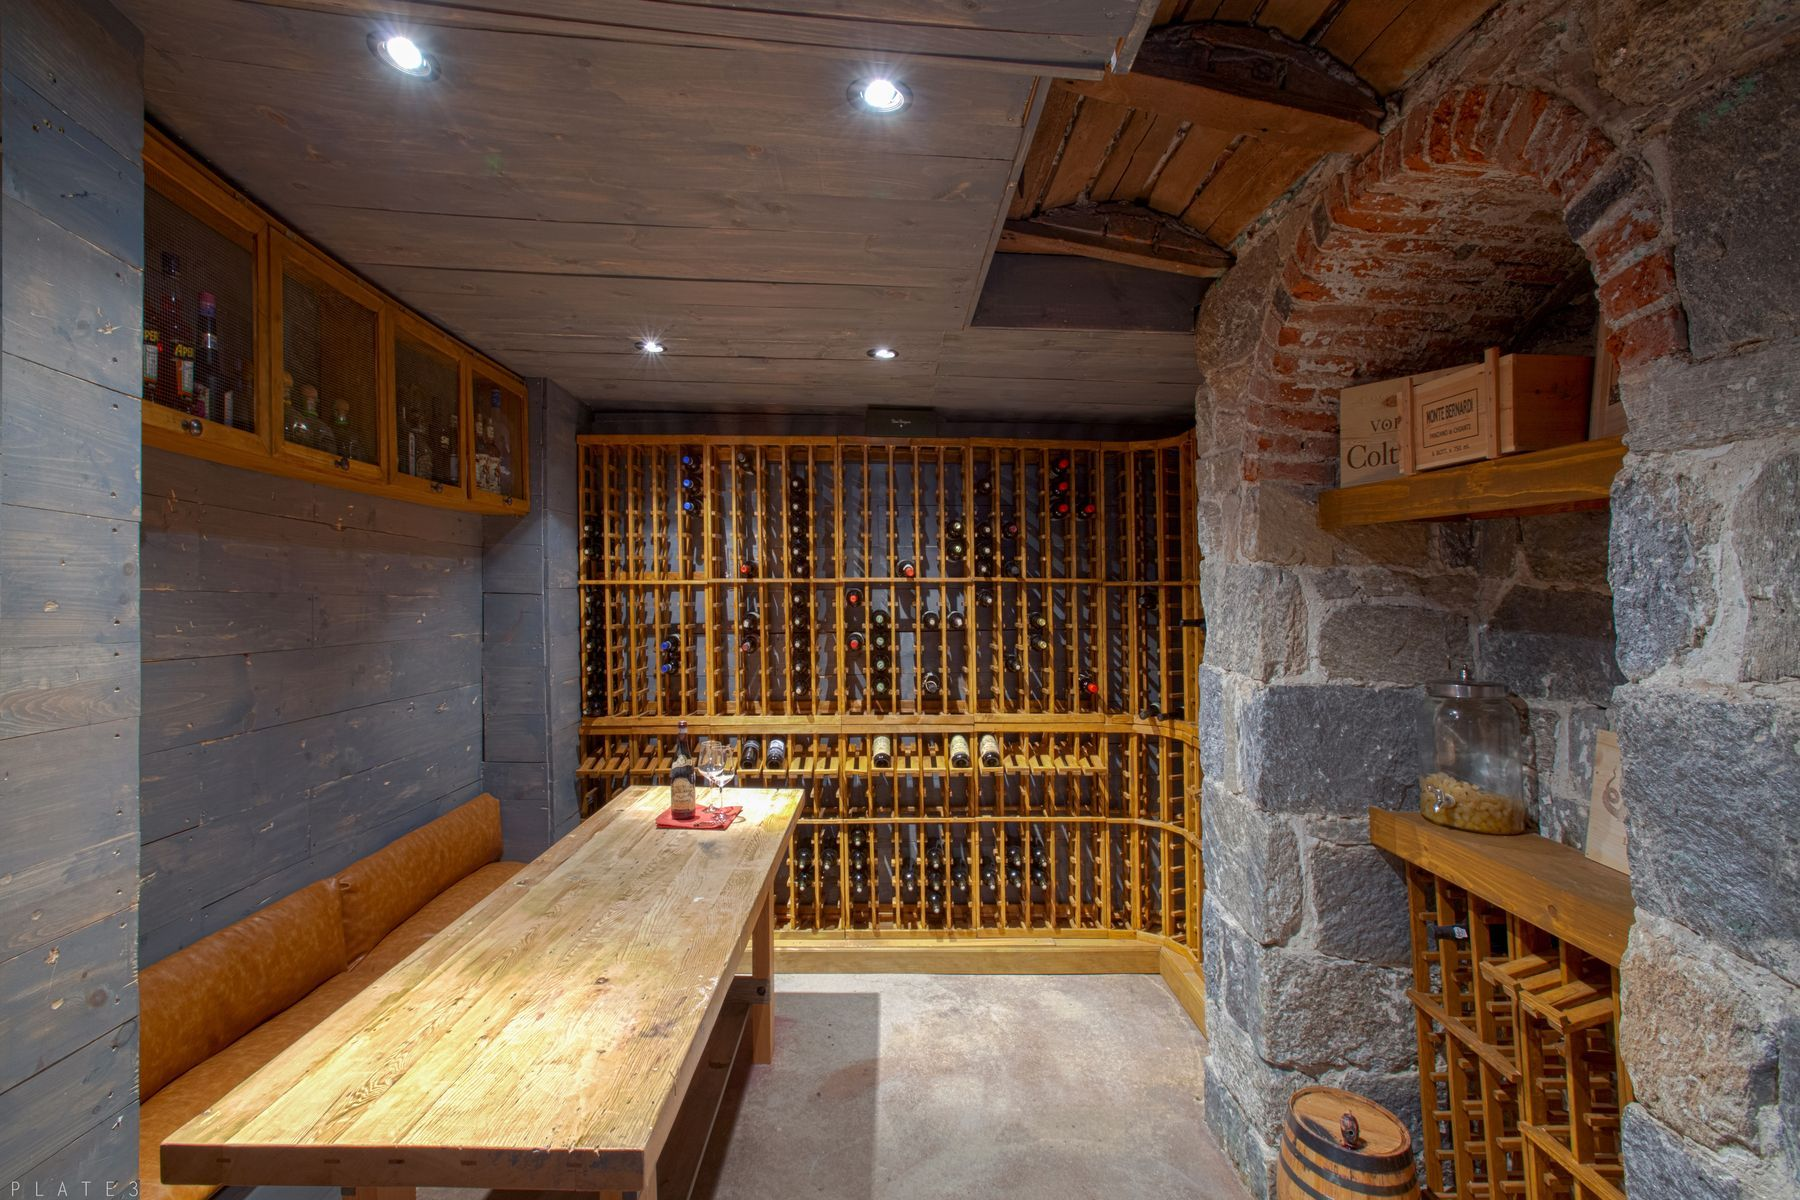 For k live in this northern liberties home with a wine cellar